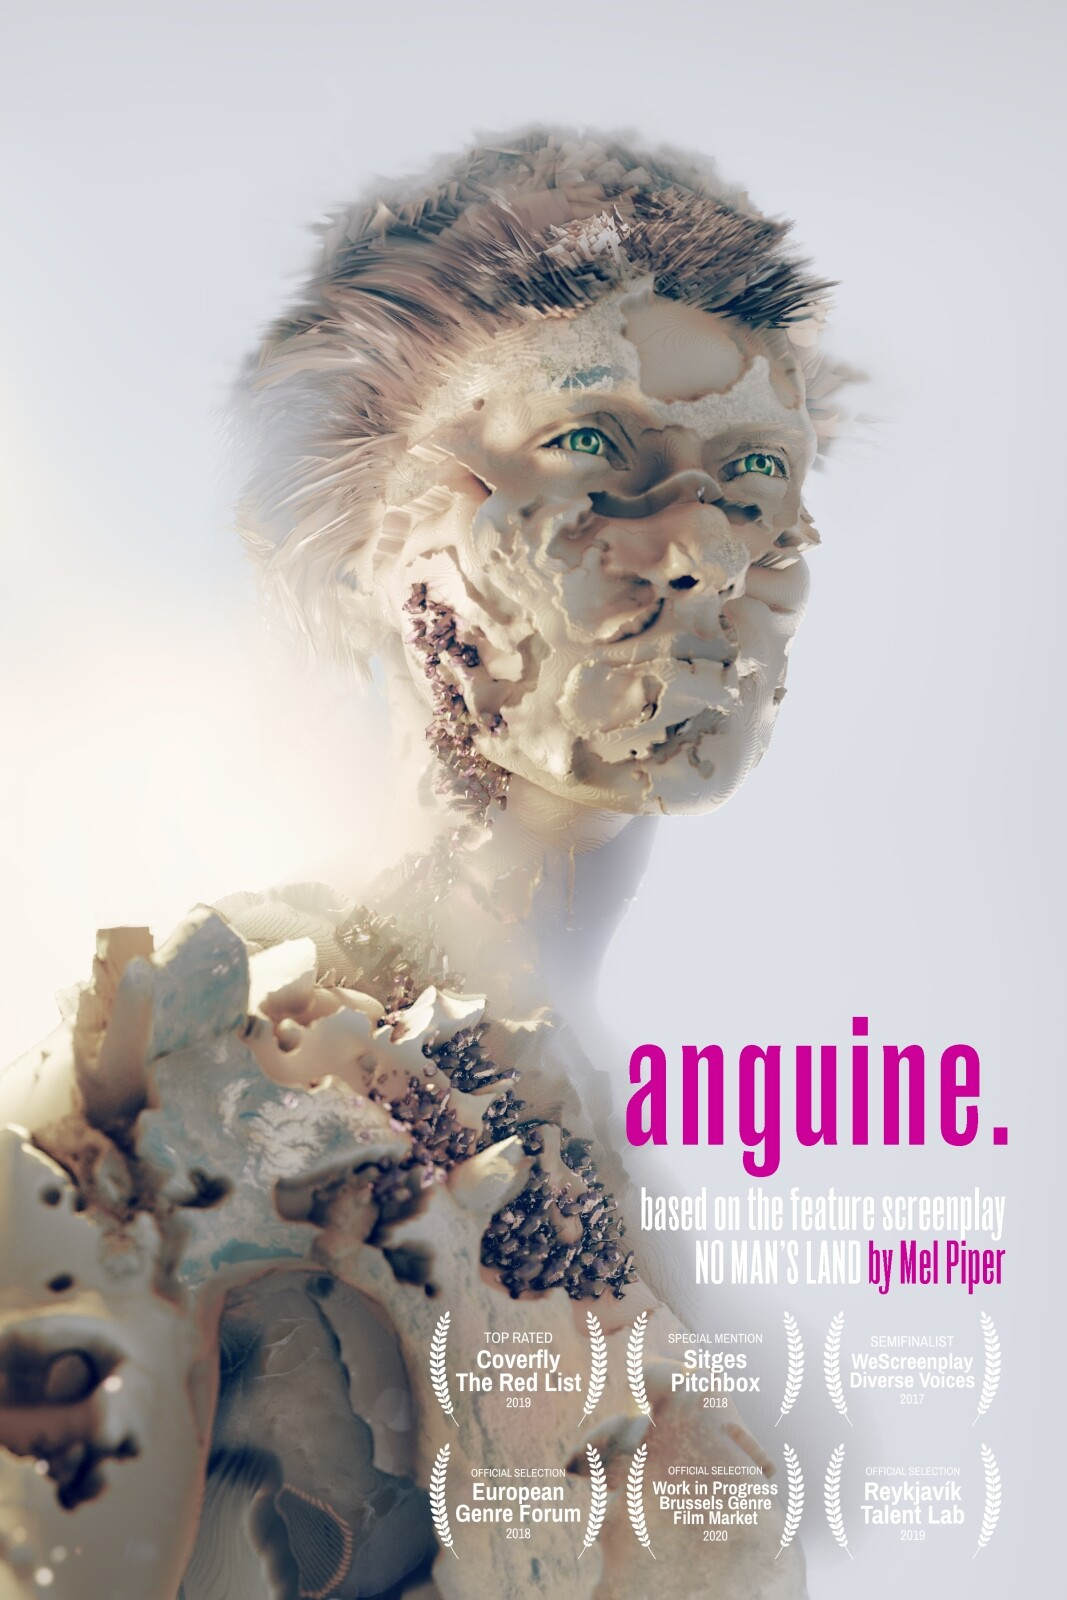 Anguine final poster